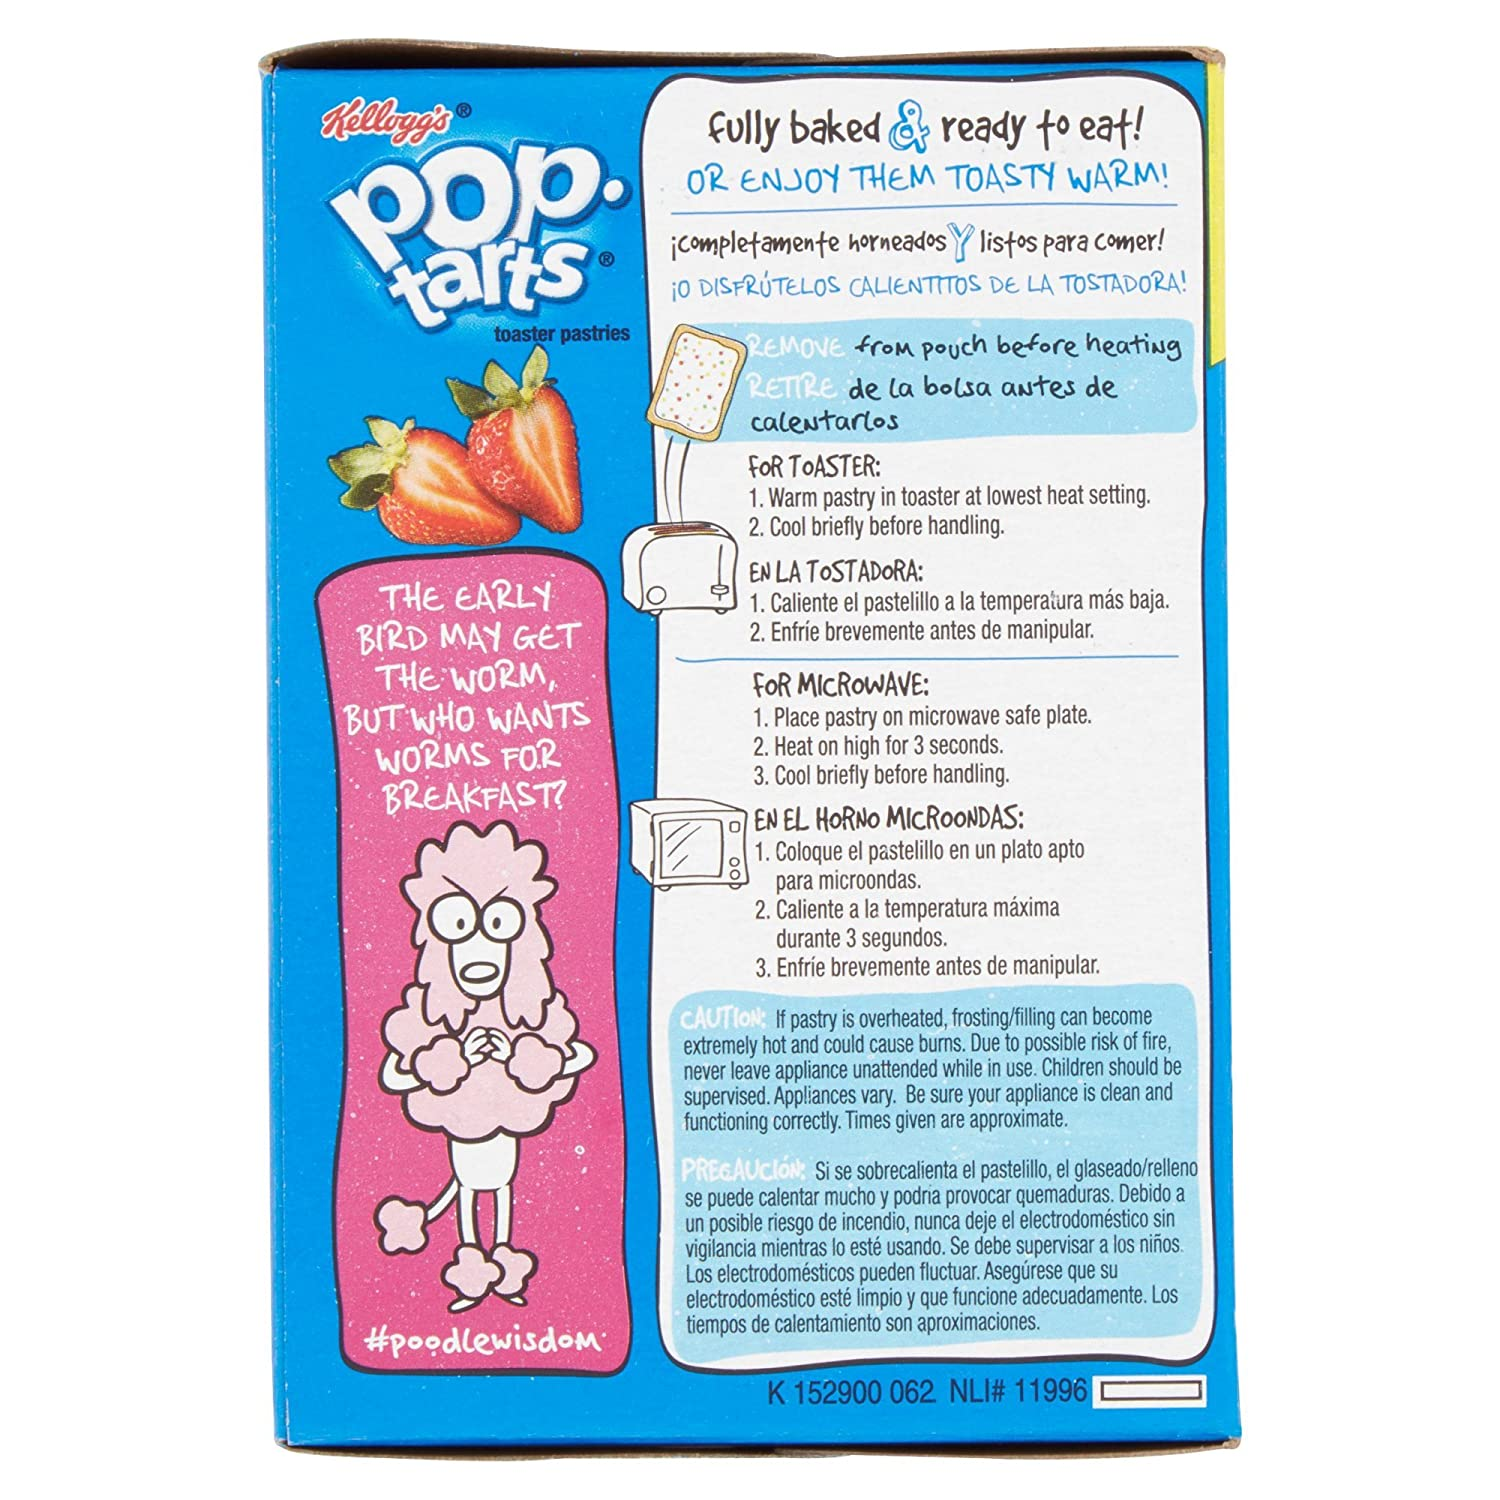 Amazon.com: Kelloggs Pop-Tarts Frosted Strawberry Toaster Pastries, 16 ct 29.3 oz (Pack of 2): Cell Phones & Accessories